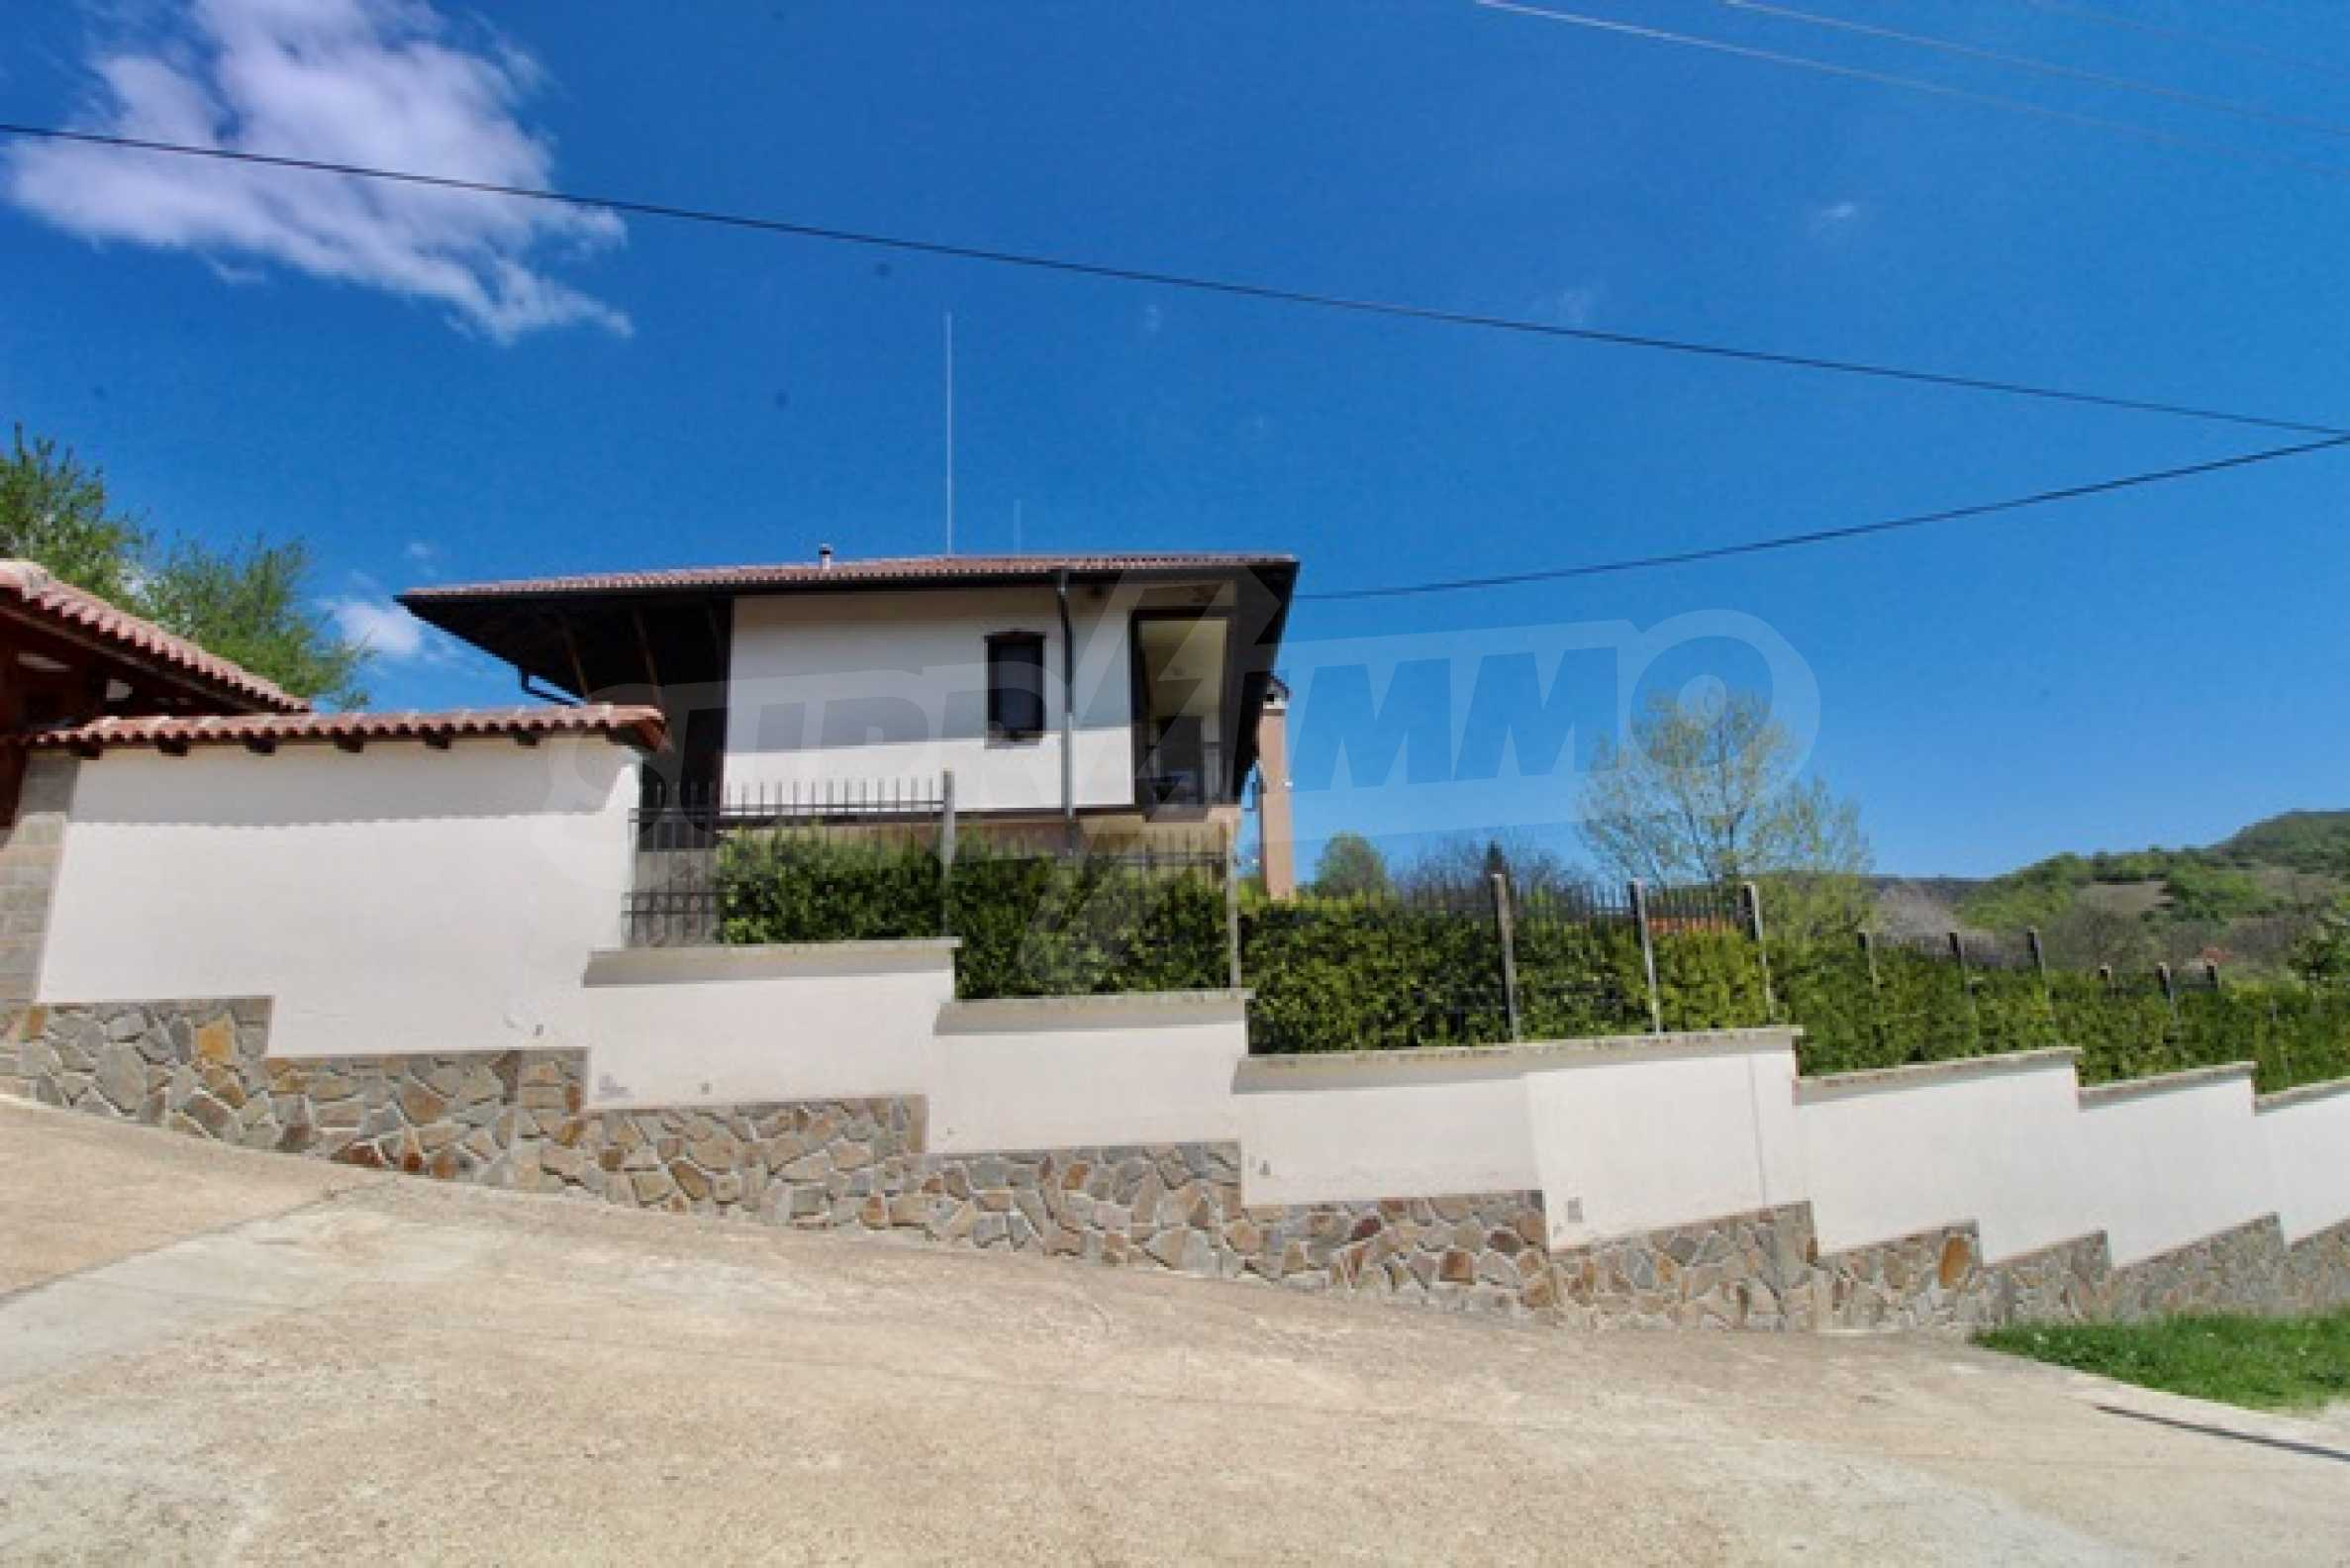 Two houses with swimming pool located close to a lake 68